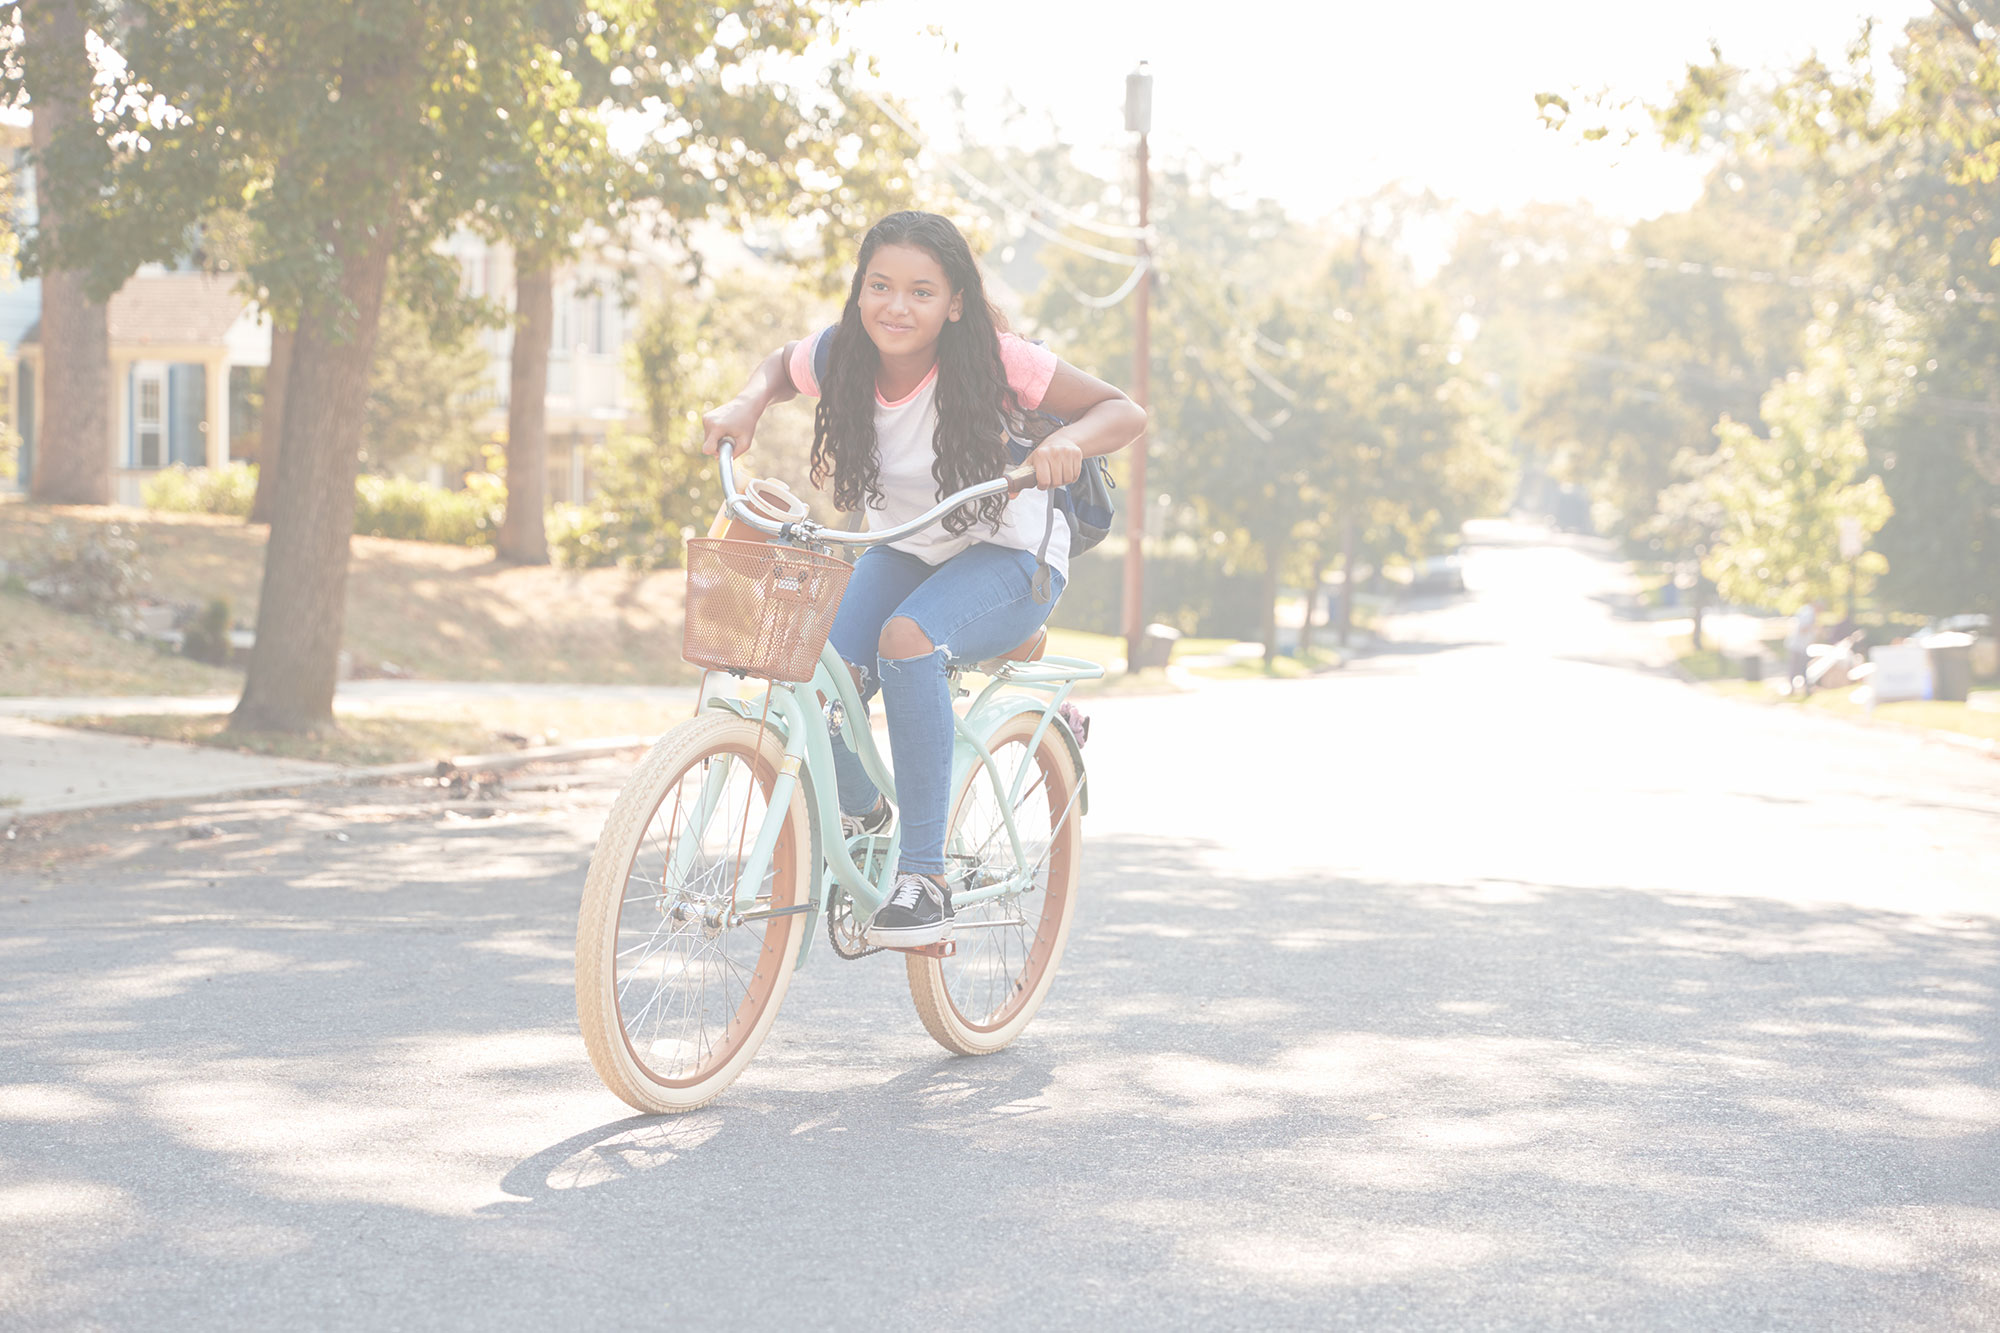 Young girl riding a bike in the street